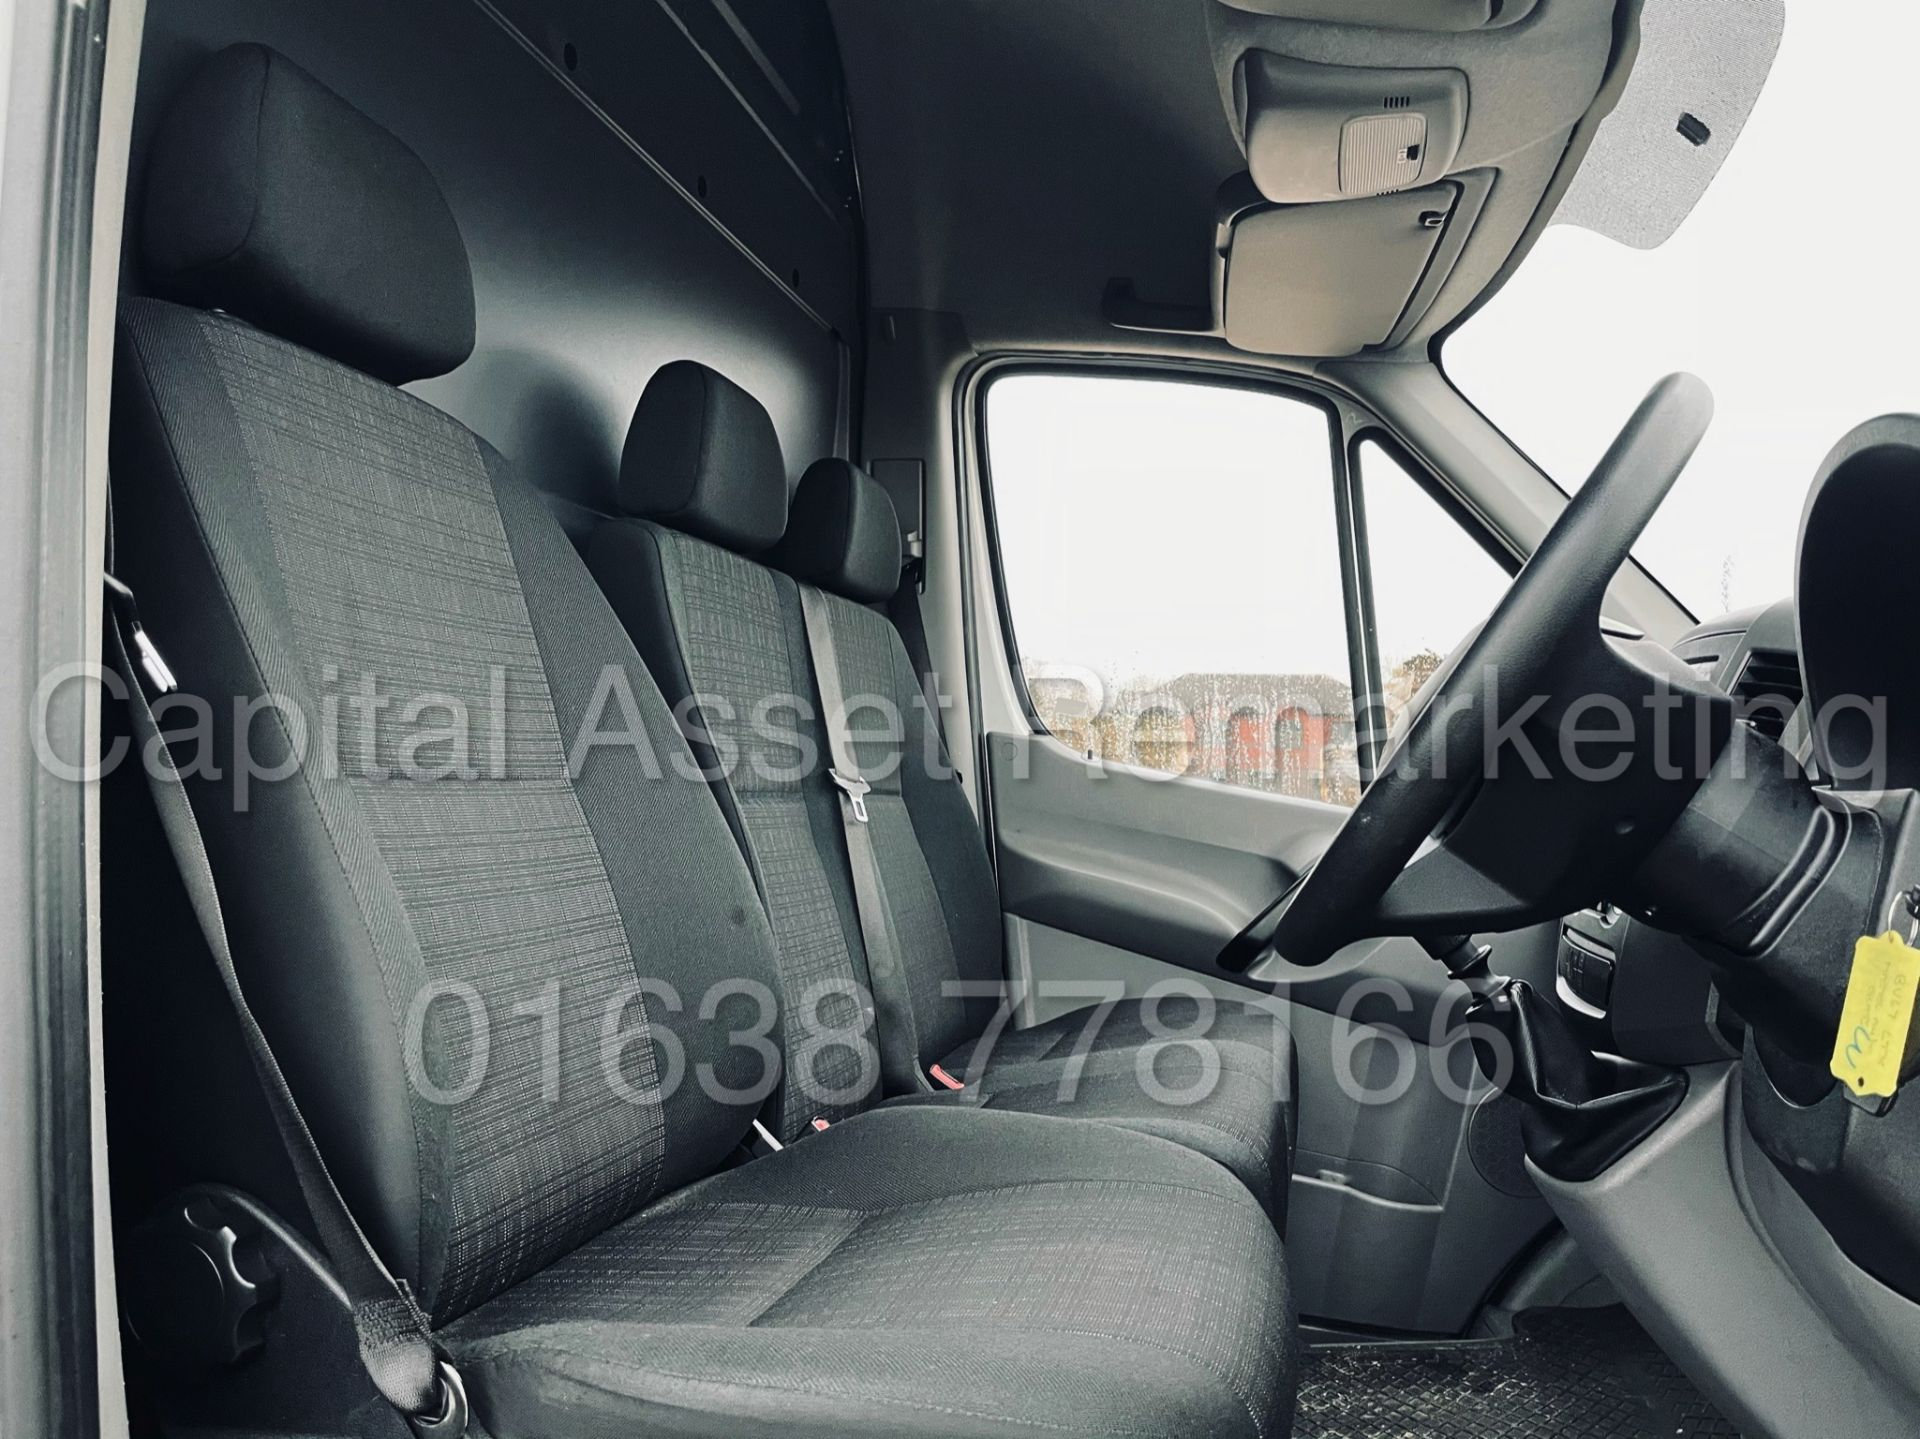 (On Sale) MERCEDES-BENZ SPRINTER 314 CDI *LWB HI-ROOF* (67 REG - EURO 6) '140 BHP-6 SPEED' (1 OWNER) - Image 25 of 37